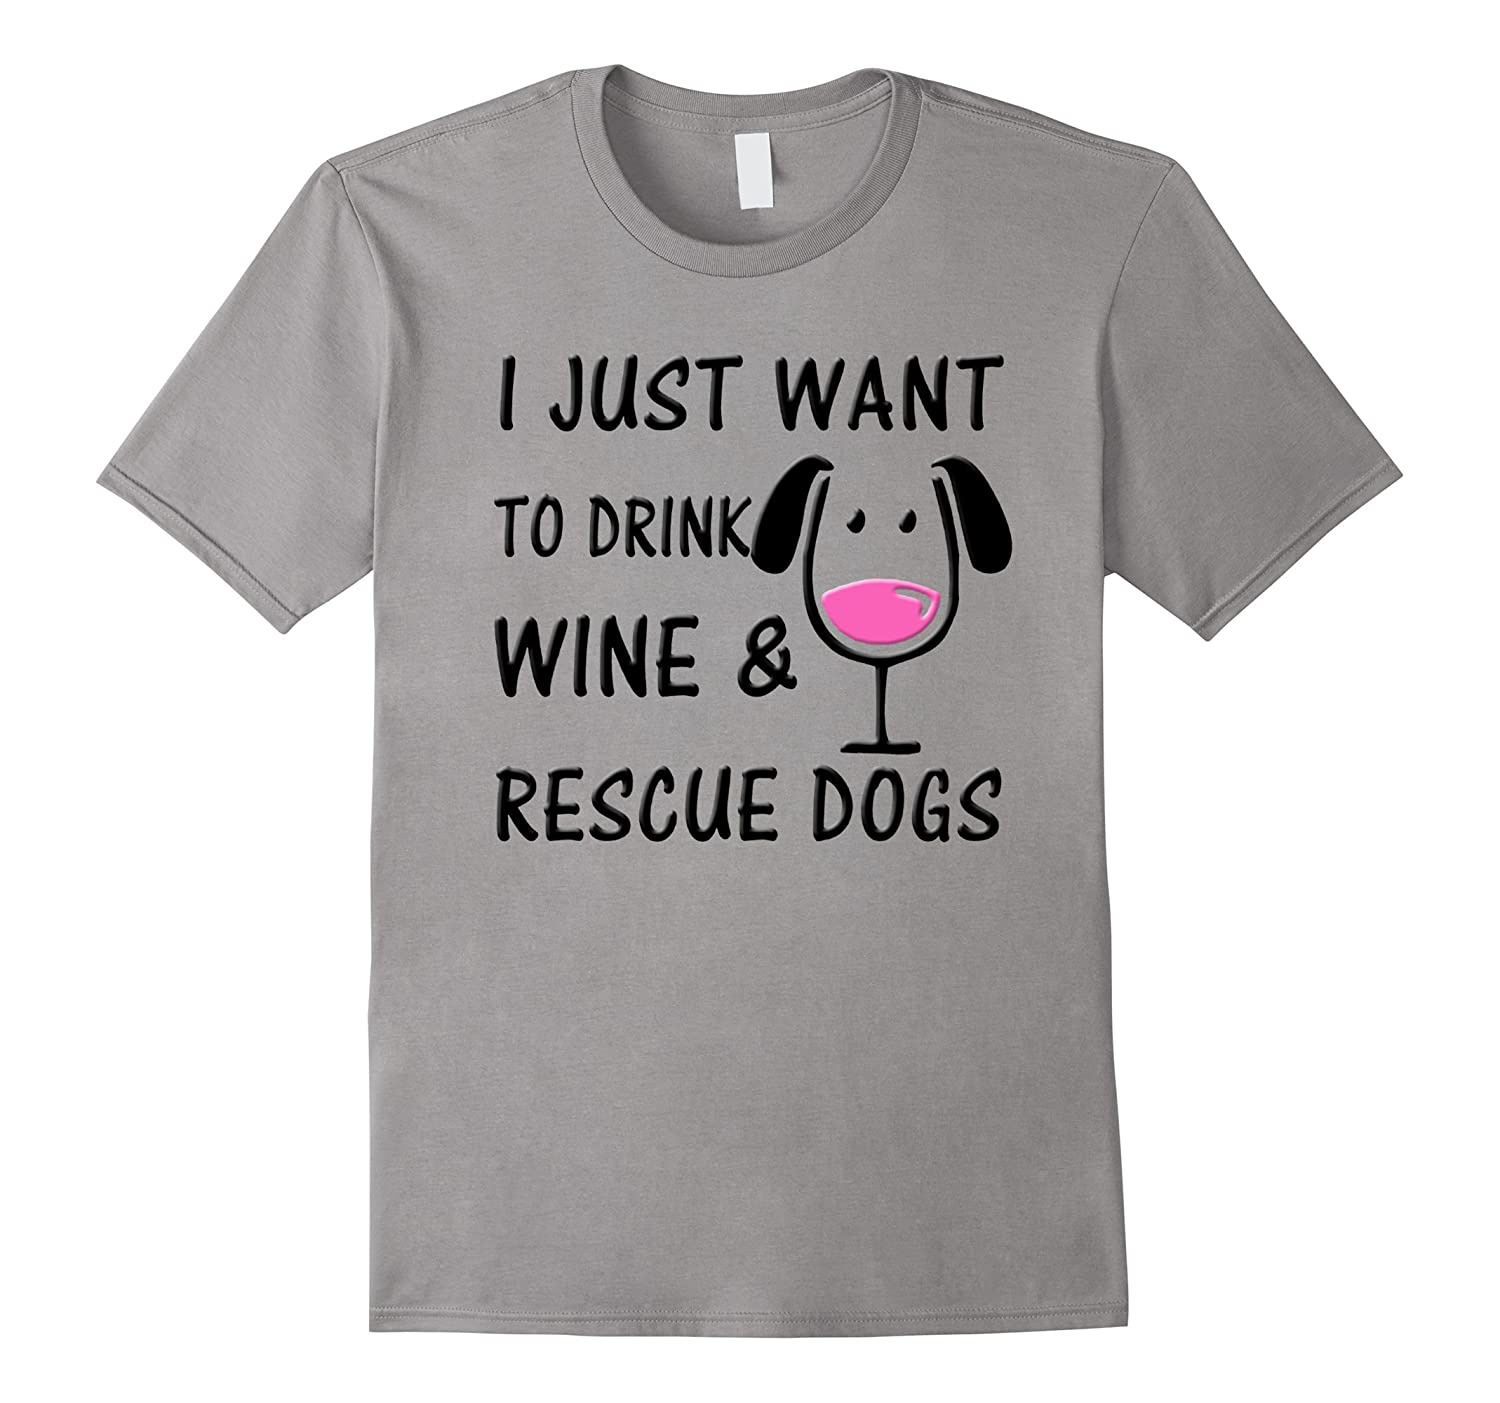 Dogs rescue shirt - i just want to drink wine  rescue dogs-RT